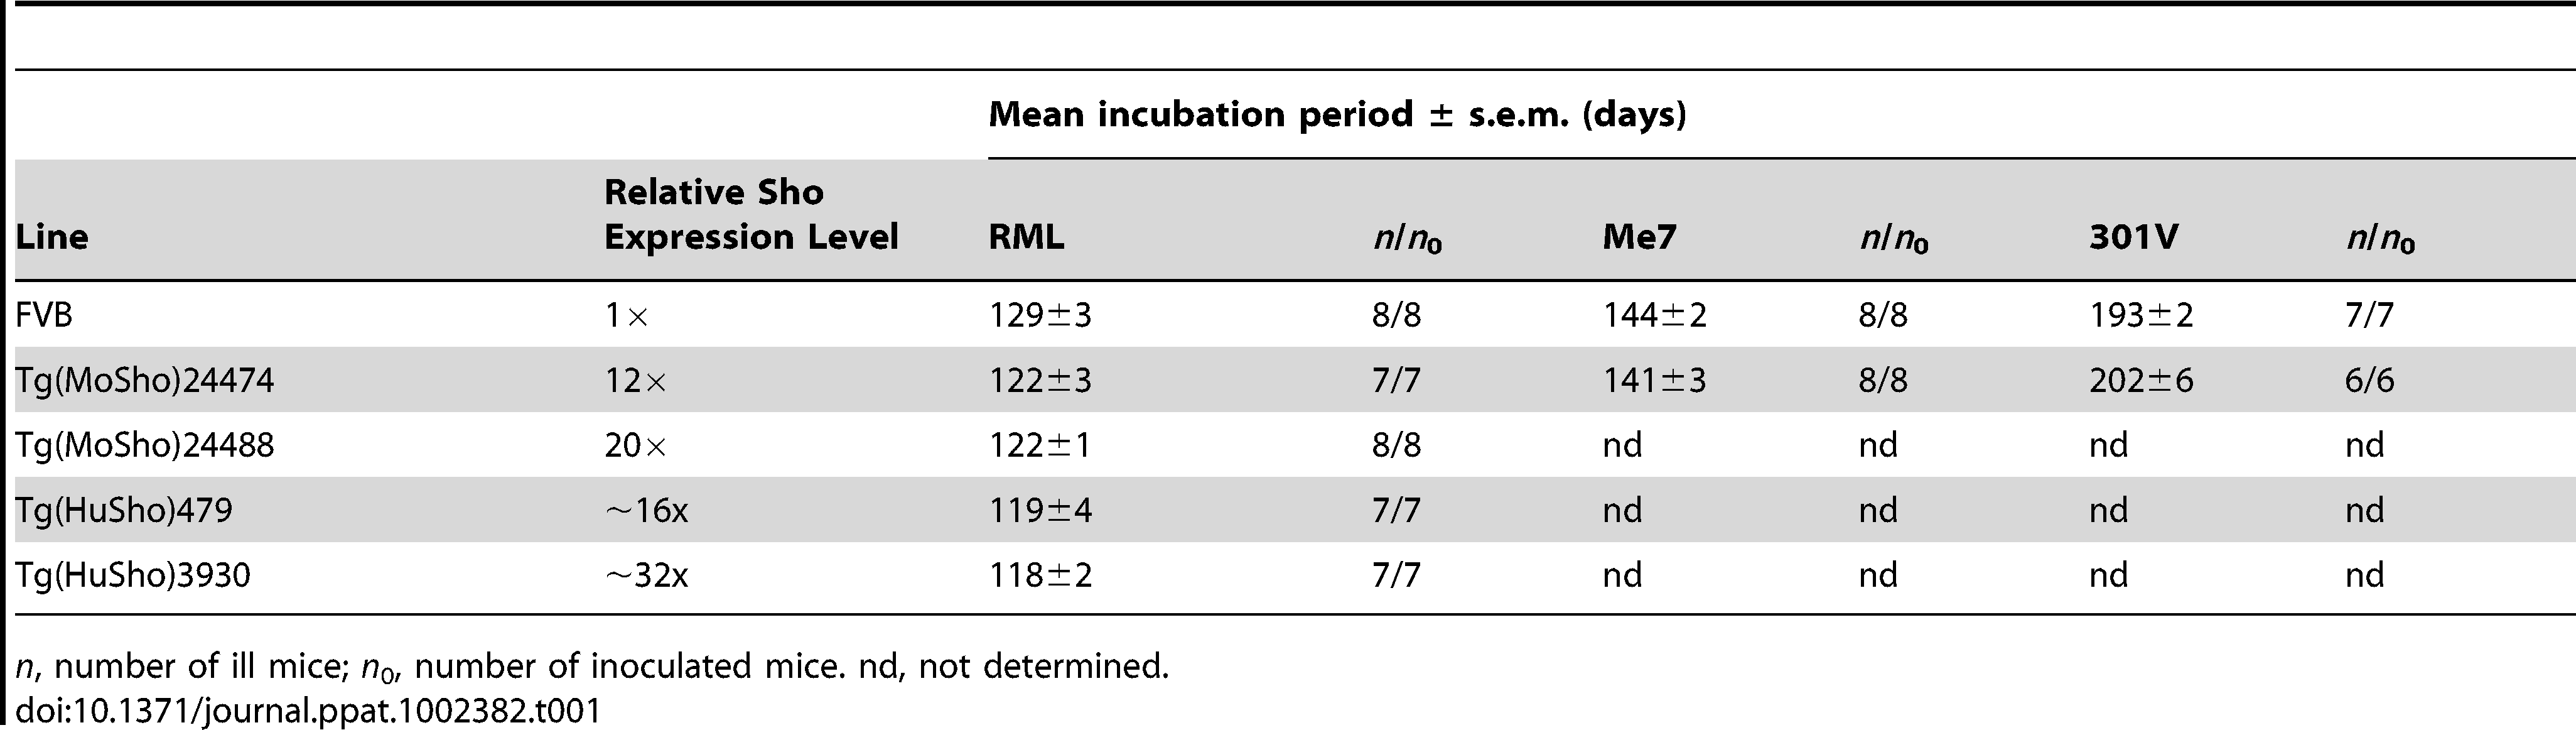 Incubation periods in Tg(Sho) mice following inoculation with different prion strains.